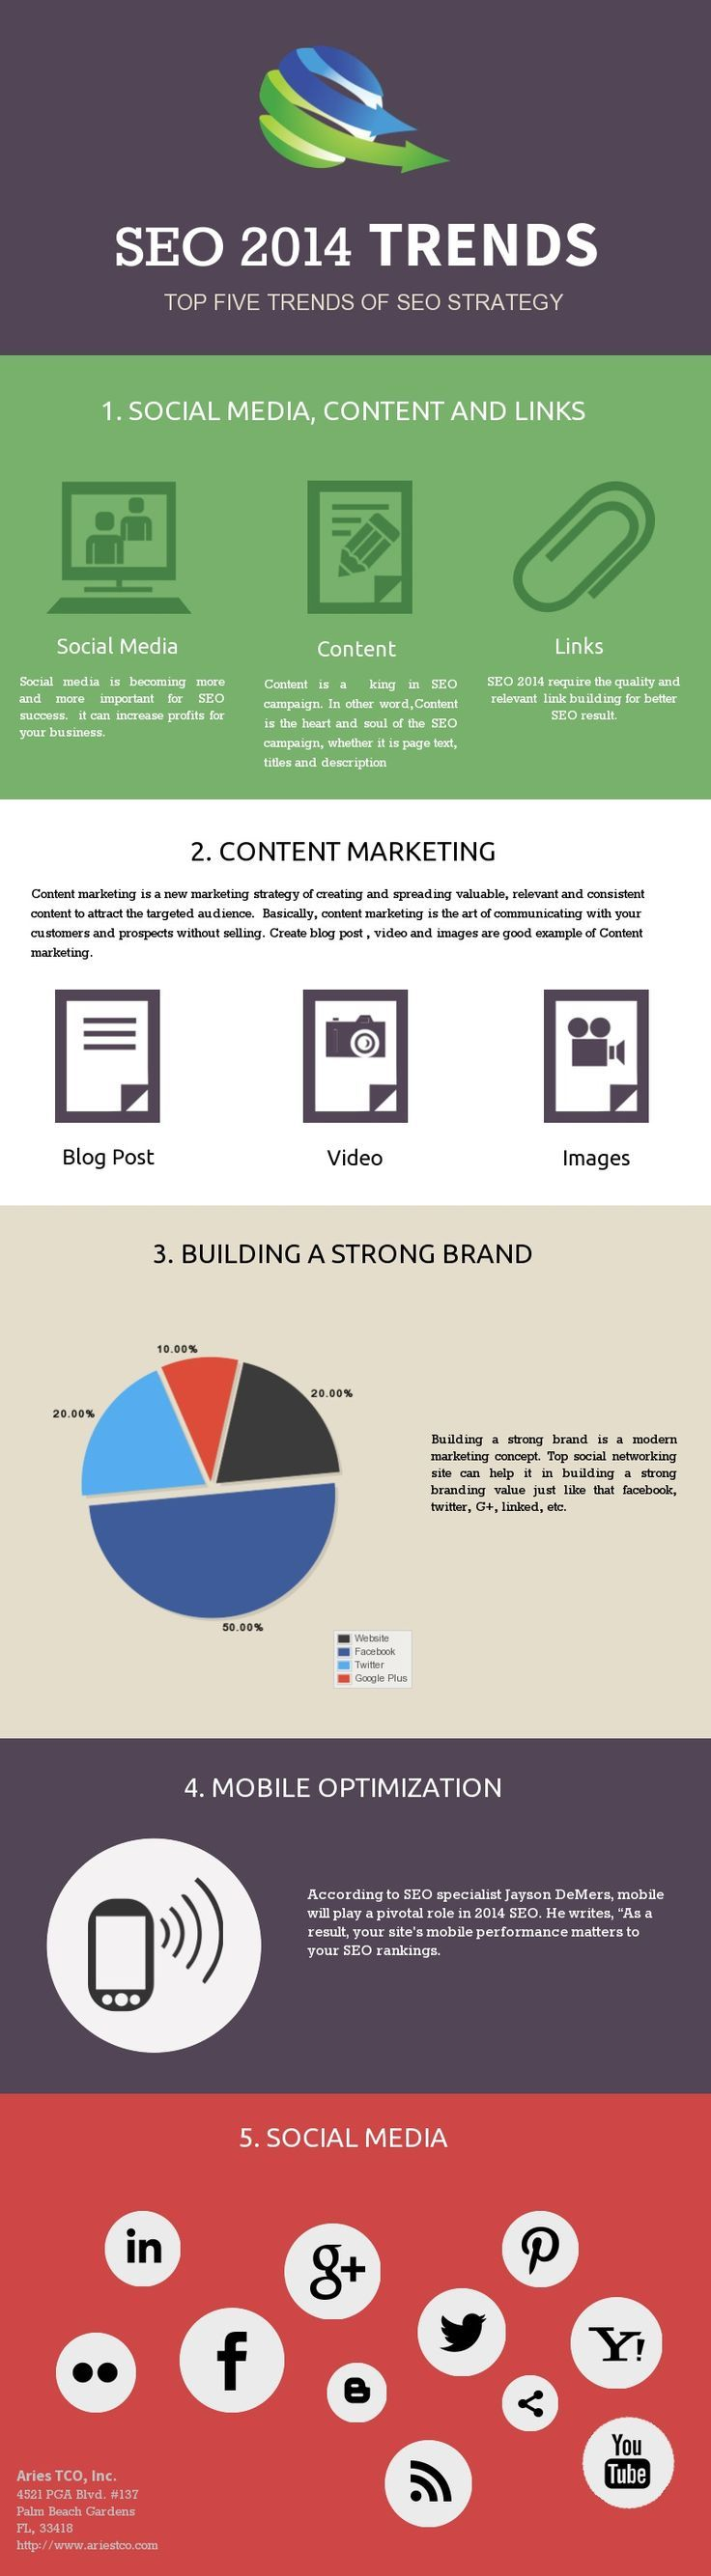 best digital strategy images on pinterest info graphics social